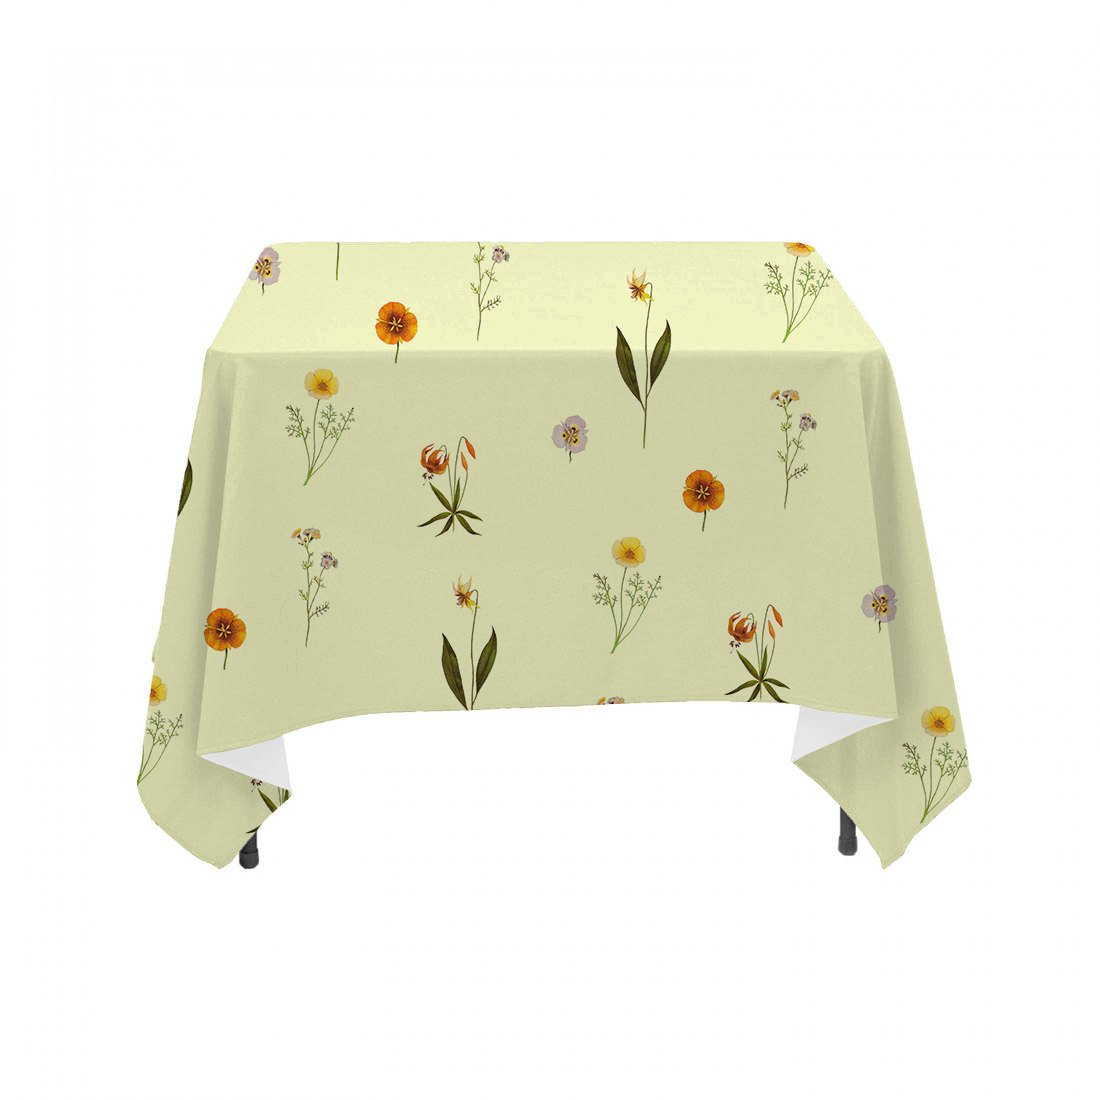 Sunny Botanical Vintage Floral - Linen Table Cloth